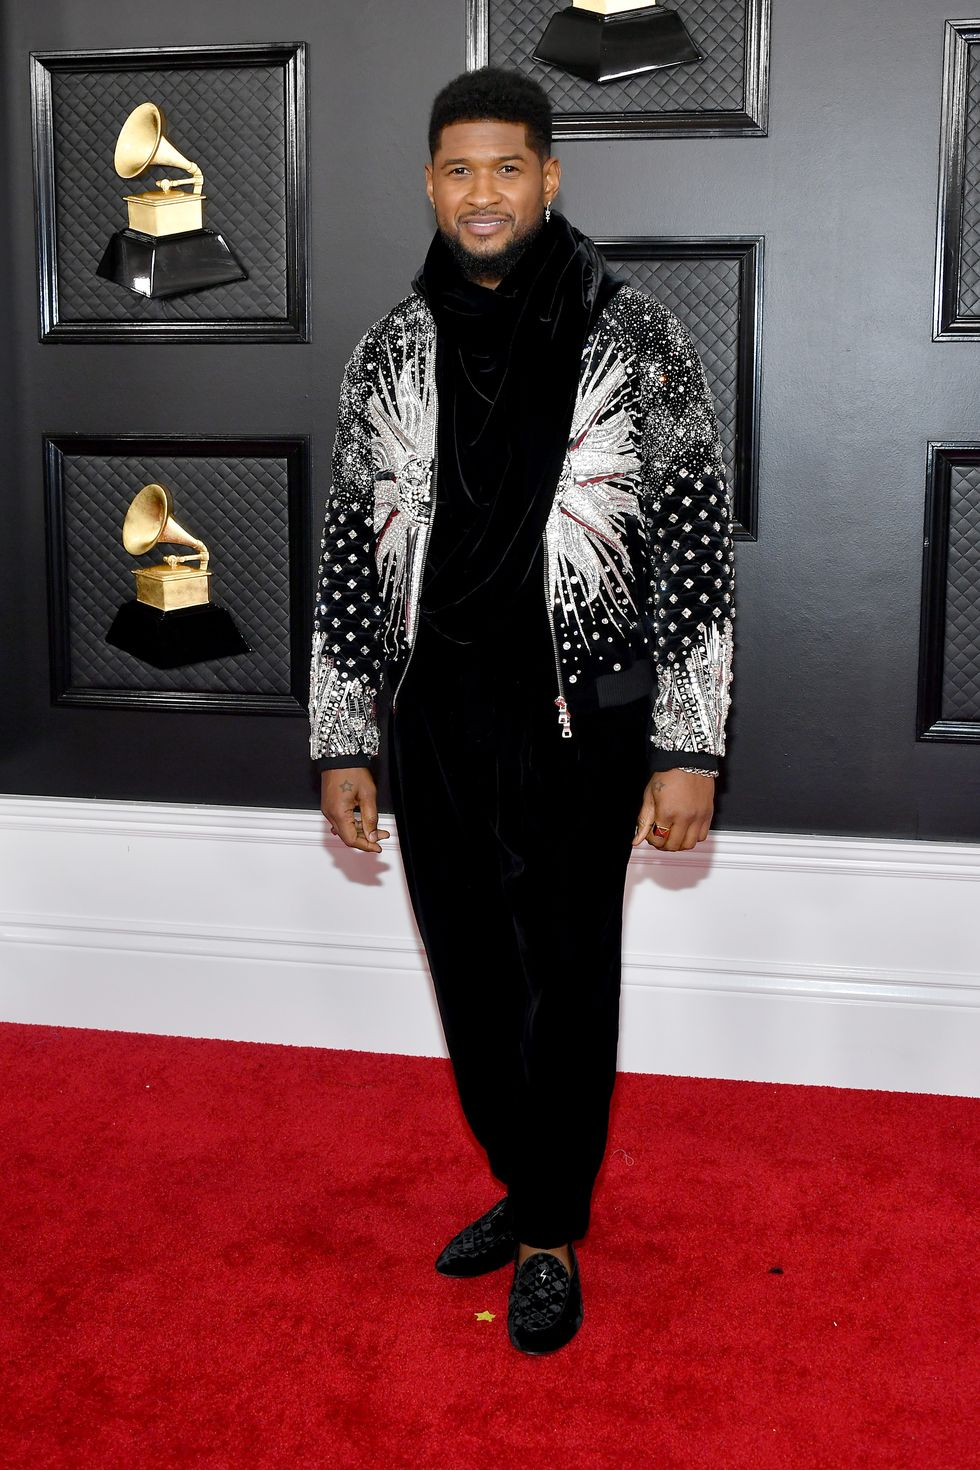 See All Your Favorite Celebs Arrive On The 2020 Grammys Red Carpet In 2020 Red Carpet Fashion Celebrity Red Carpet Grammy Awards Red Carpet